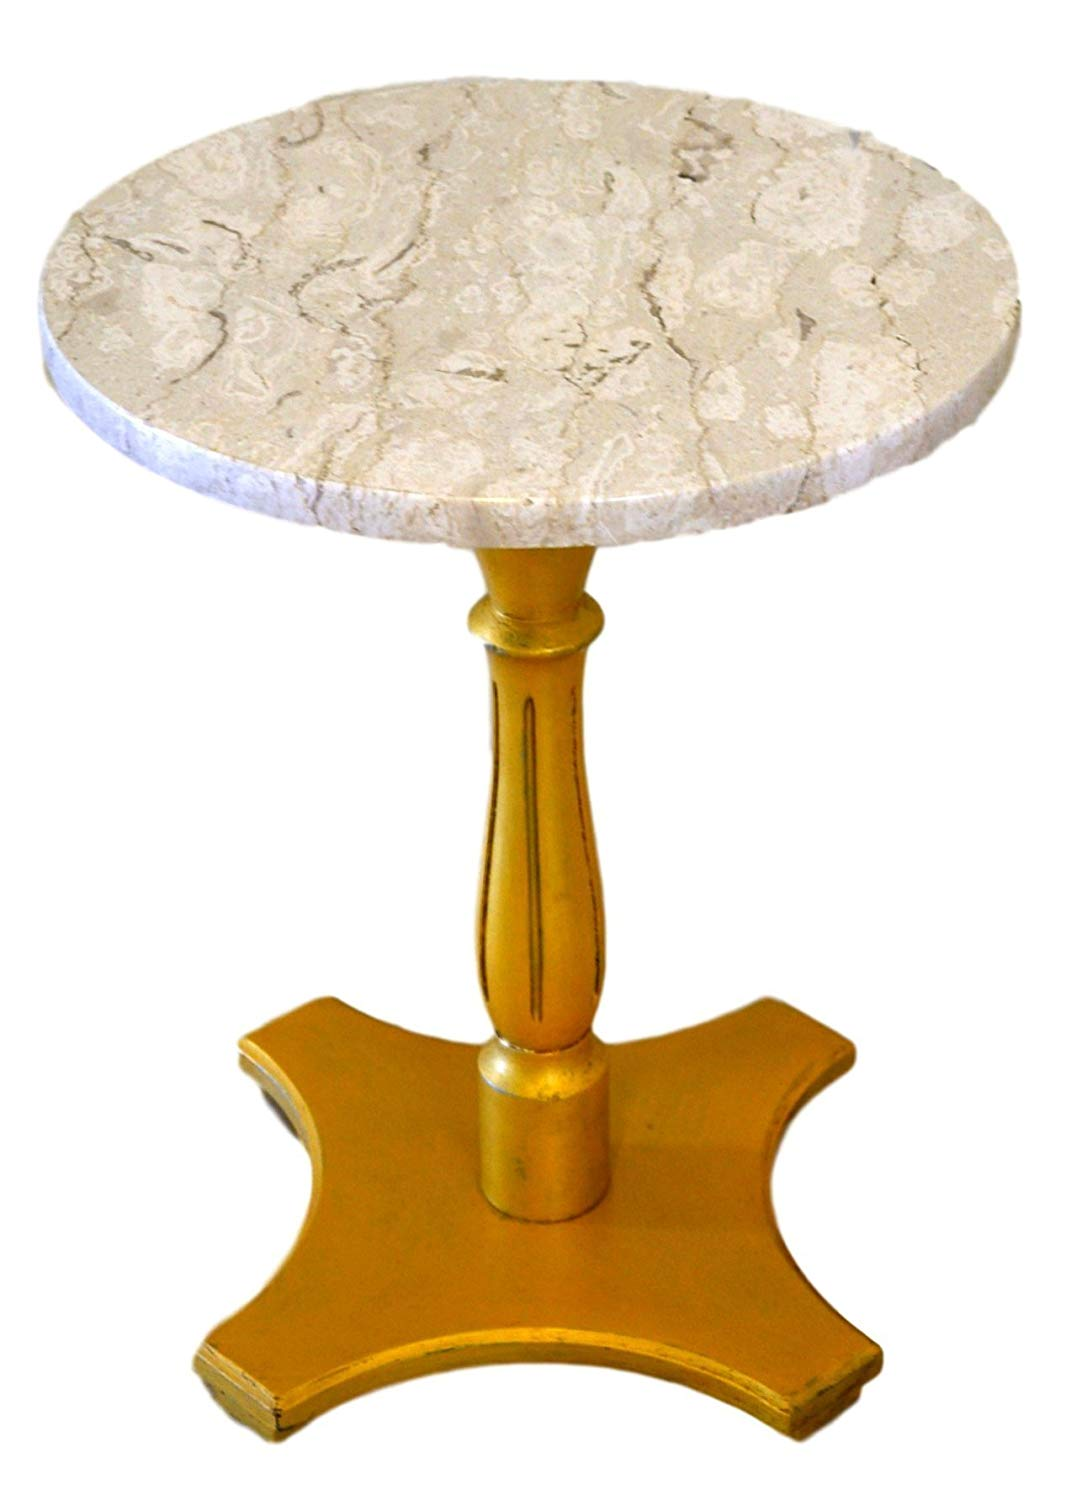 round marble top accent table gold pedestal base handmade end black leather couch silver trunk coffee patio set covers best tablecloths christmas arrangement ideas small garden